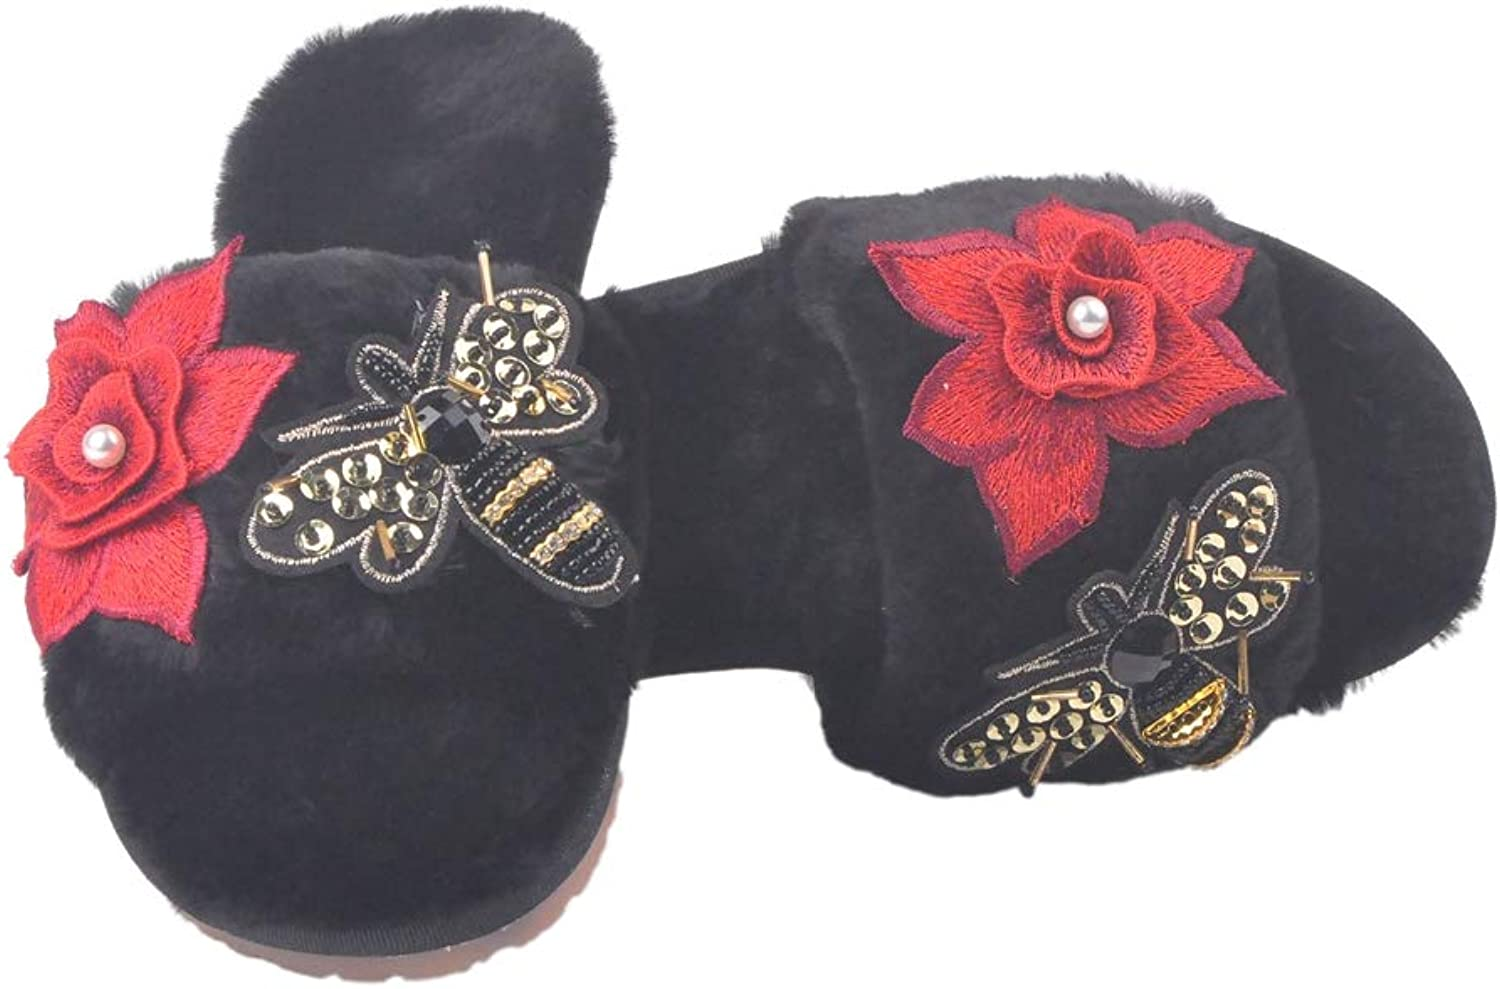 T-JULY Women's Hand Embroidery Flower and Butterfly Fur Slippers Fluffy Plush Sandals Winter Warm Slides Flip Flops